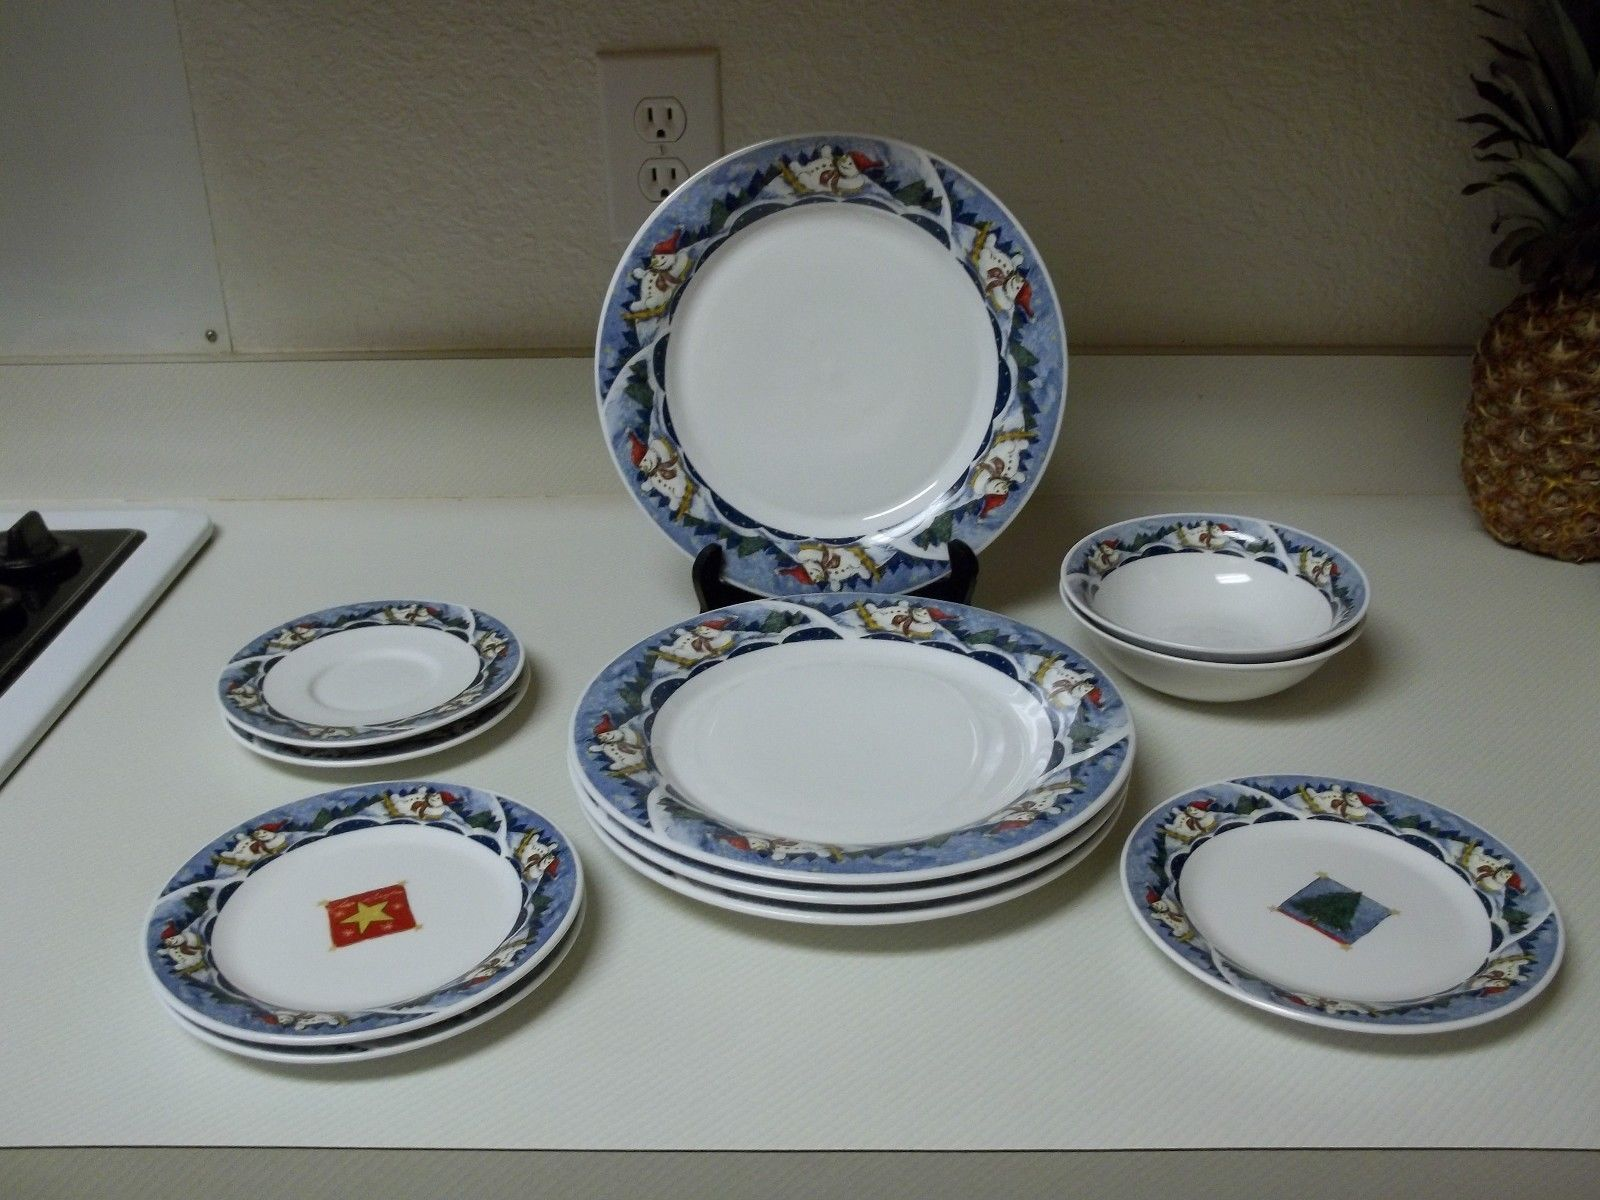 S l1600 & Oneida Holiday Dining Snow Valley 12 Piece and 50 similar items